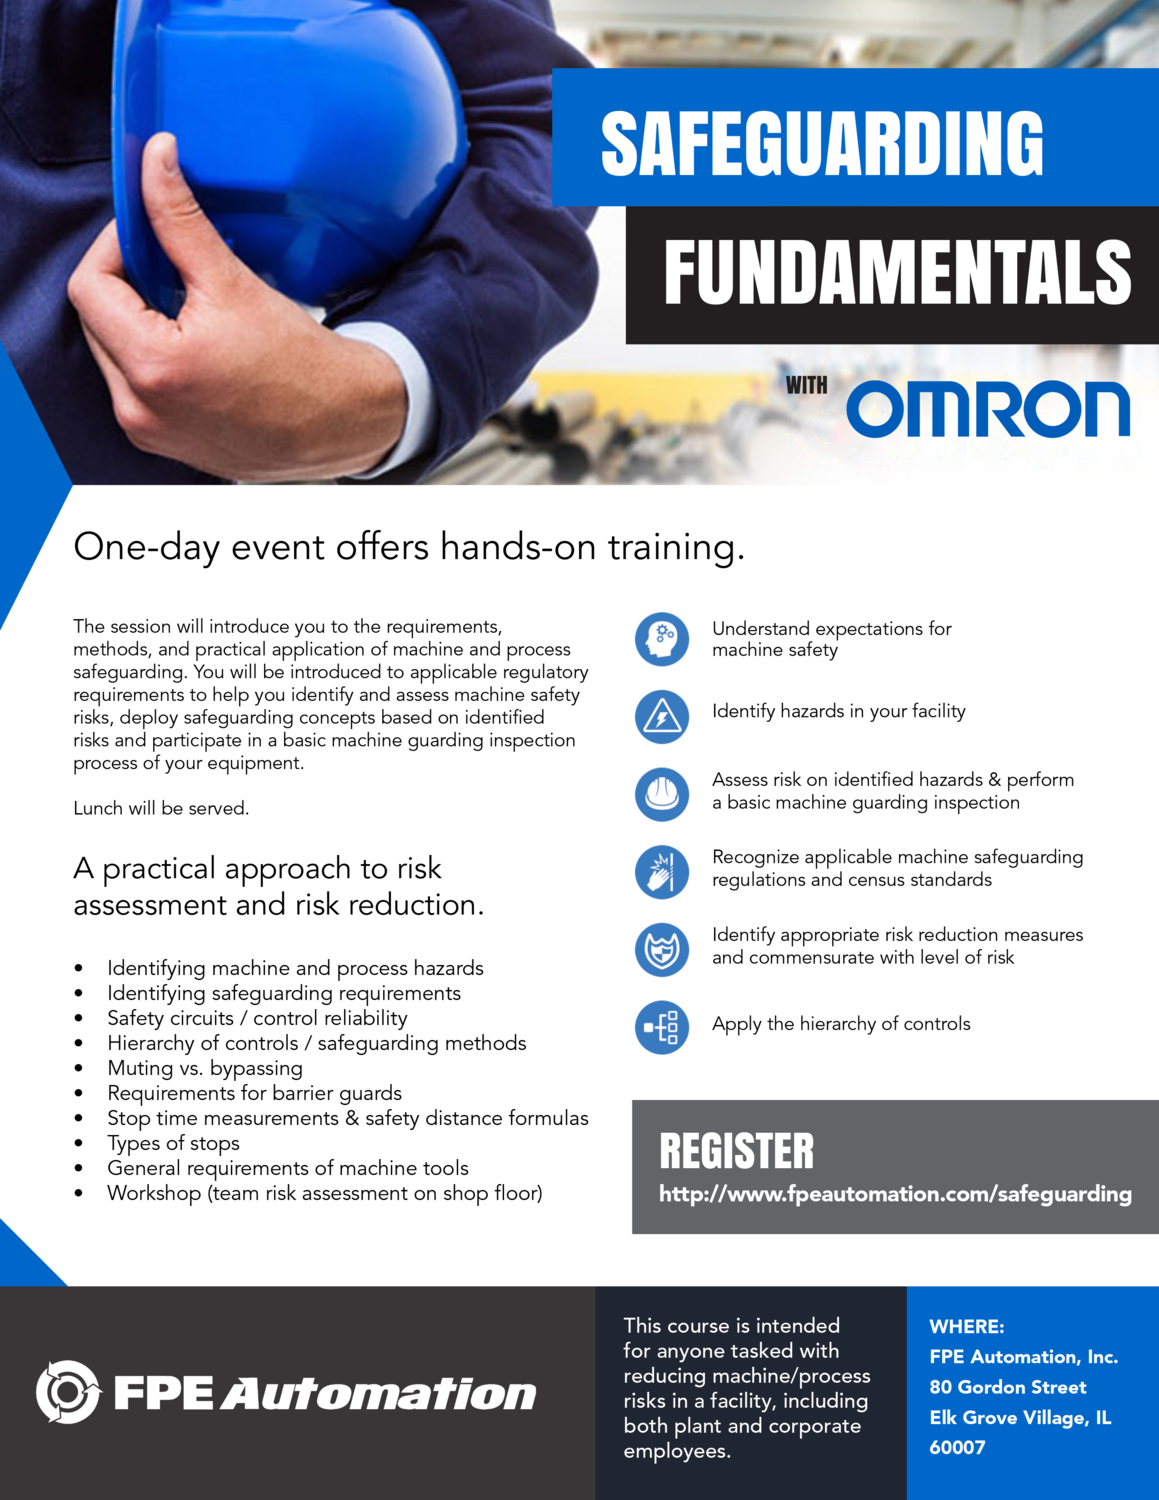 Safeguarding Fundamentals with Omron